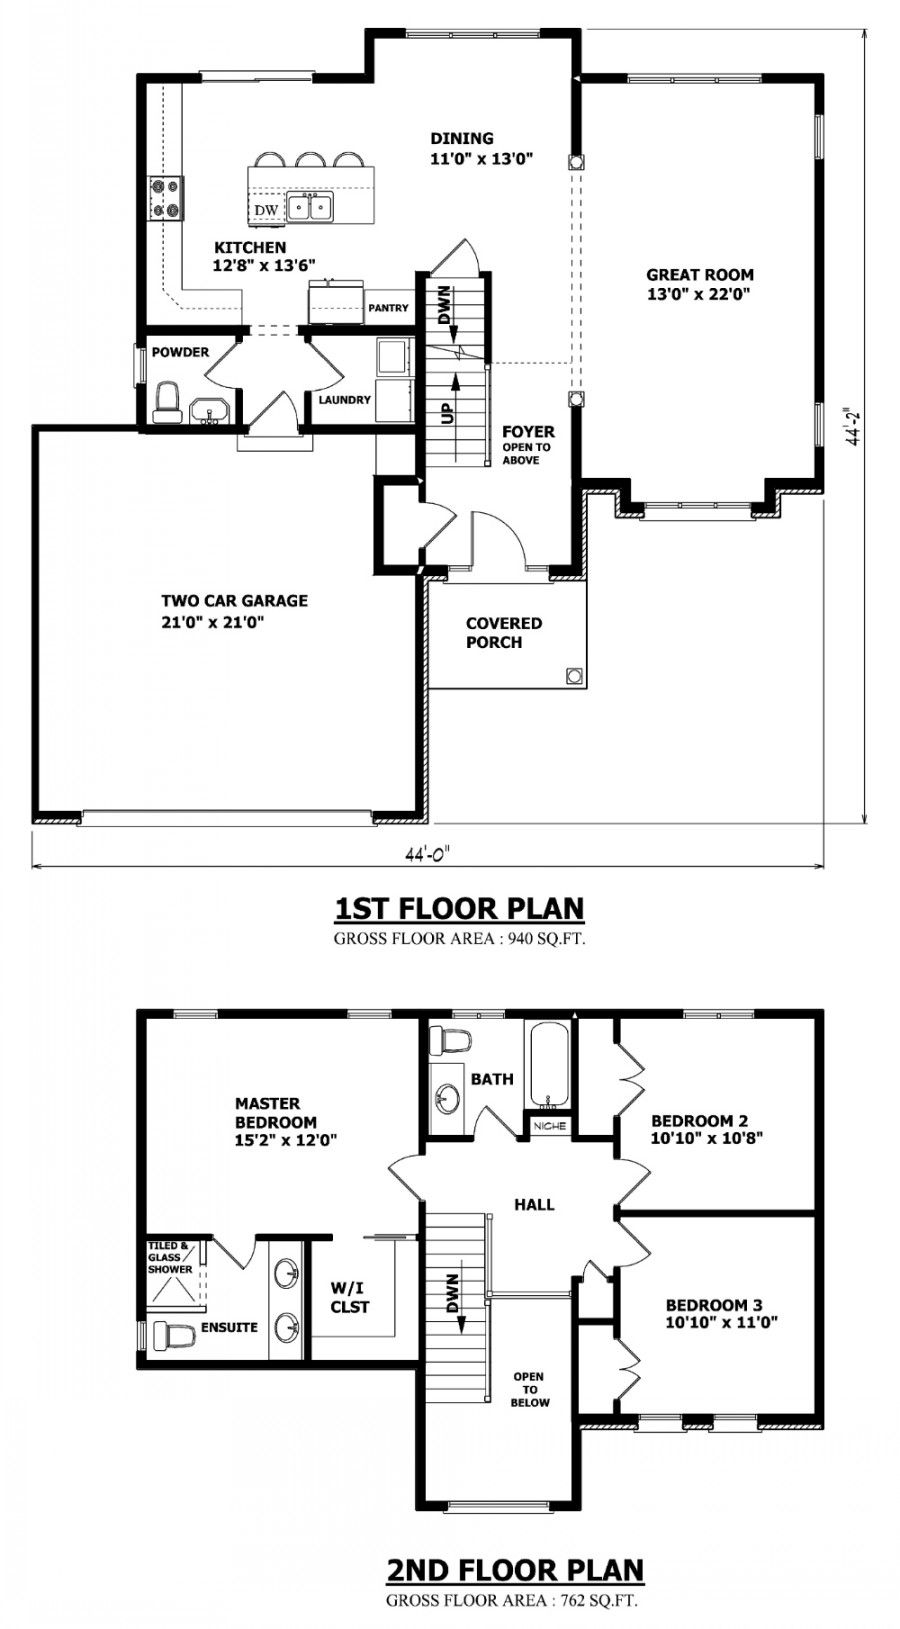 Laundry And Powder Replaced With Pantry Library And Office Off The Great Room Laundry Double Storey House Plans Two Storey House Plans Two Story House Plans